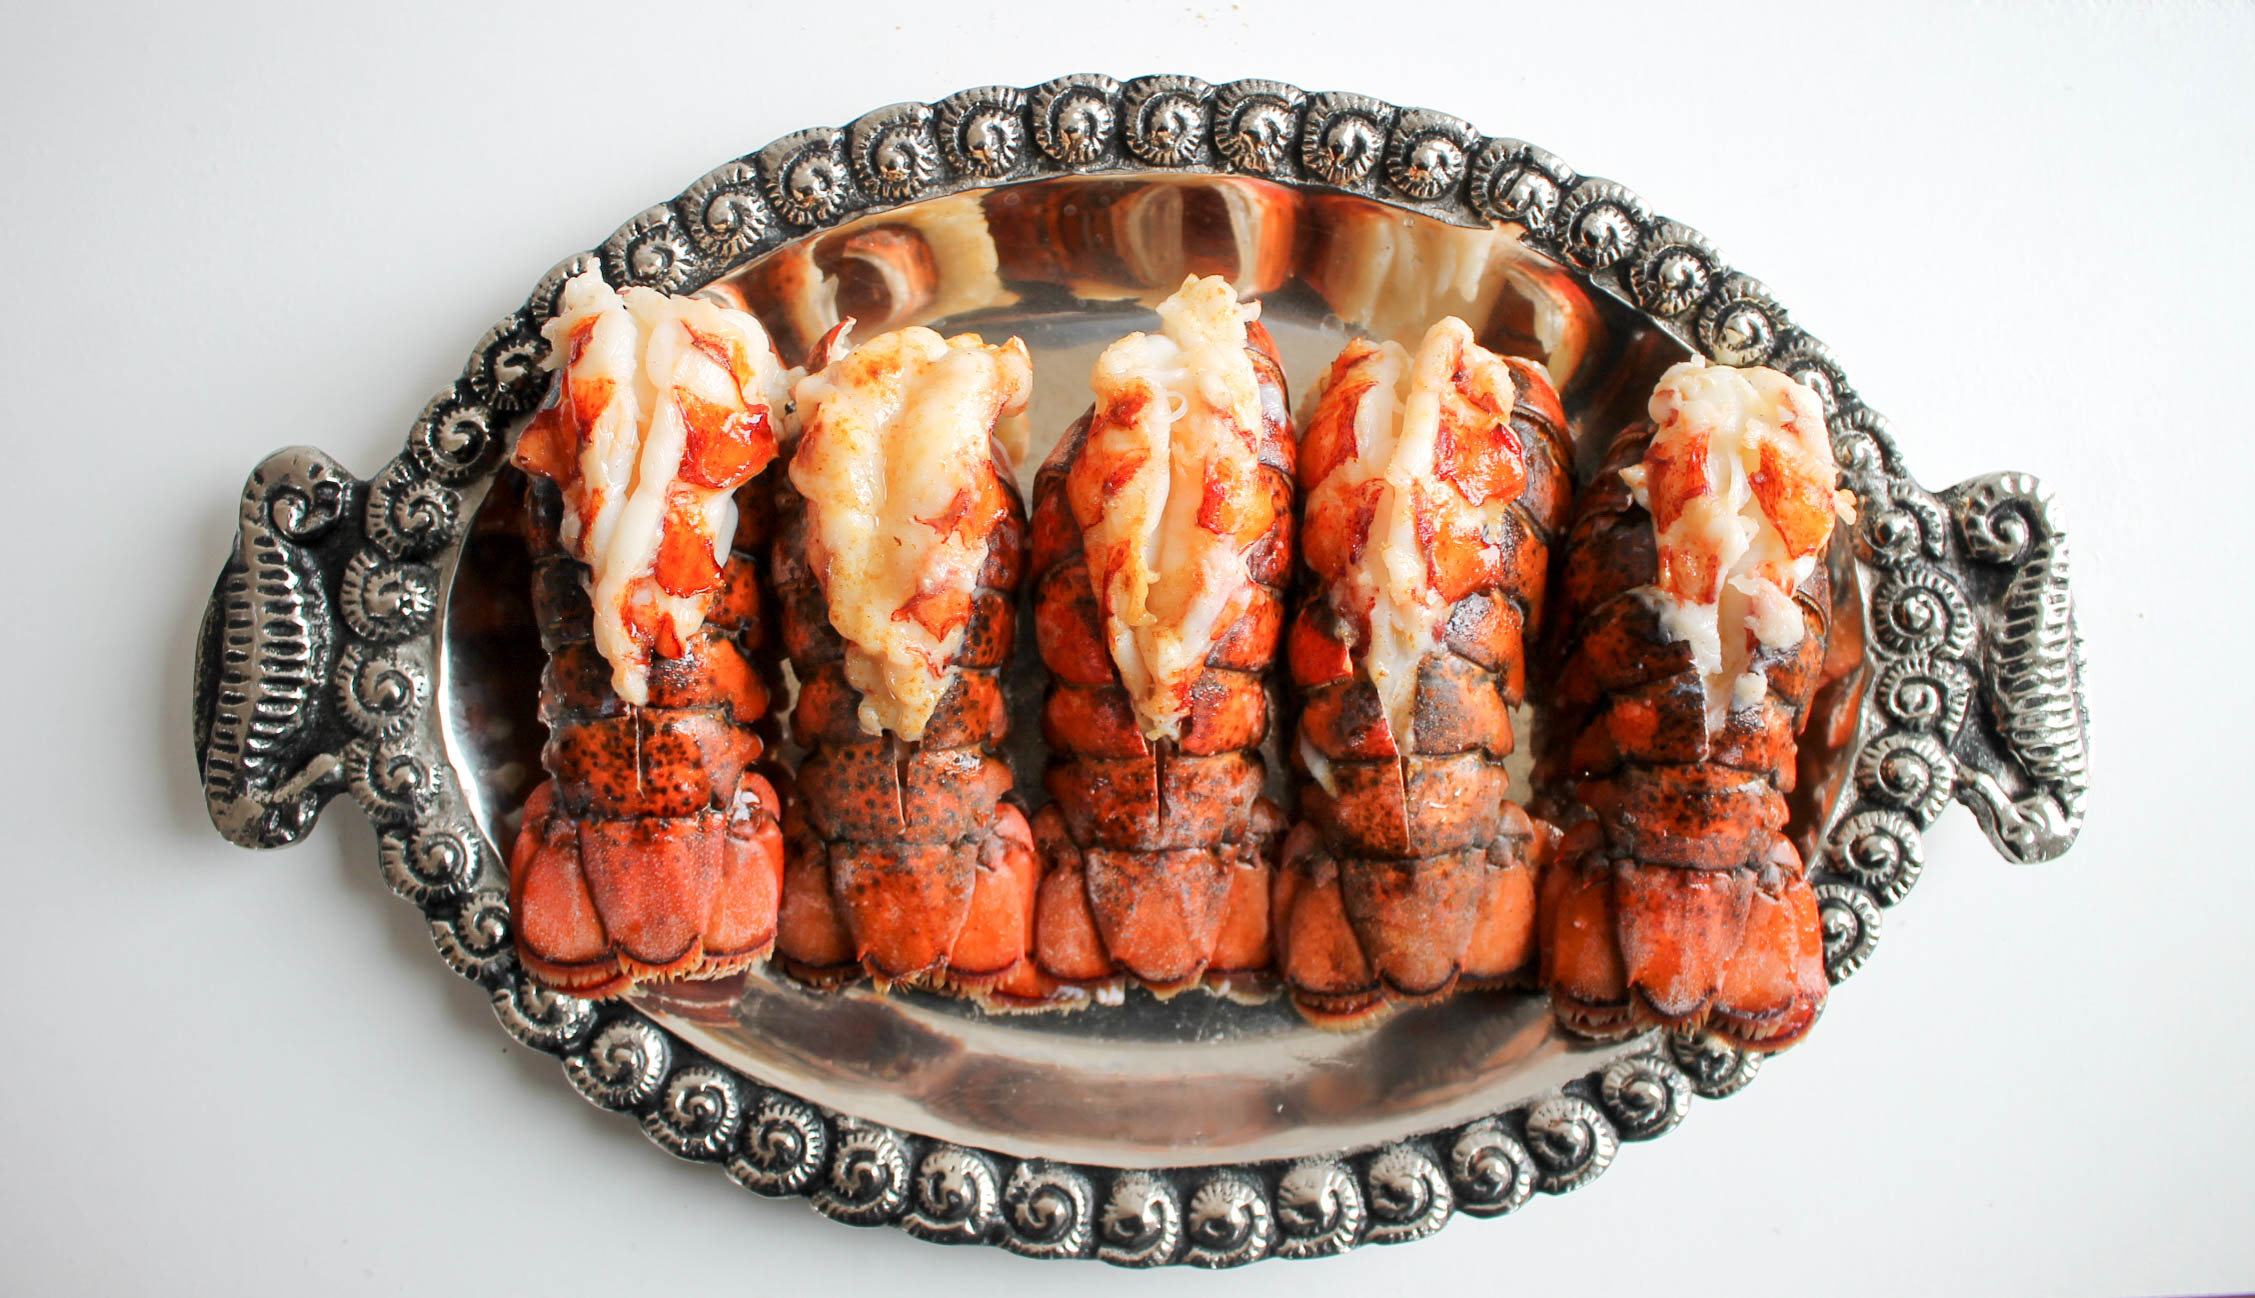 Baked lobster tails diverse dinners baked lobster tails by diverse dinners forumfinder Gallery